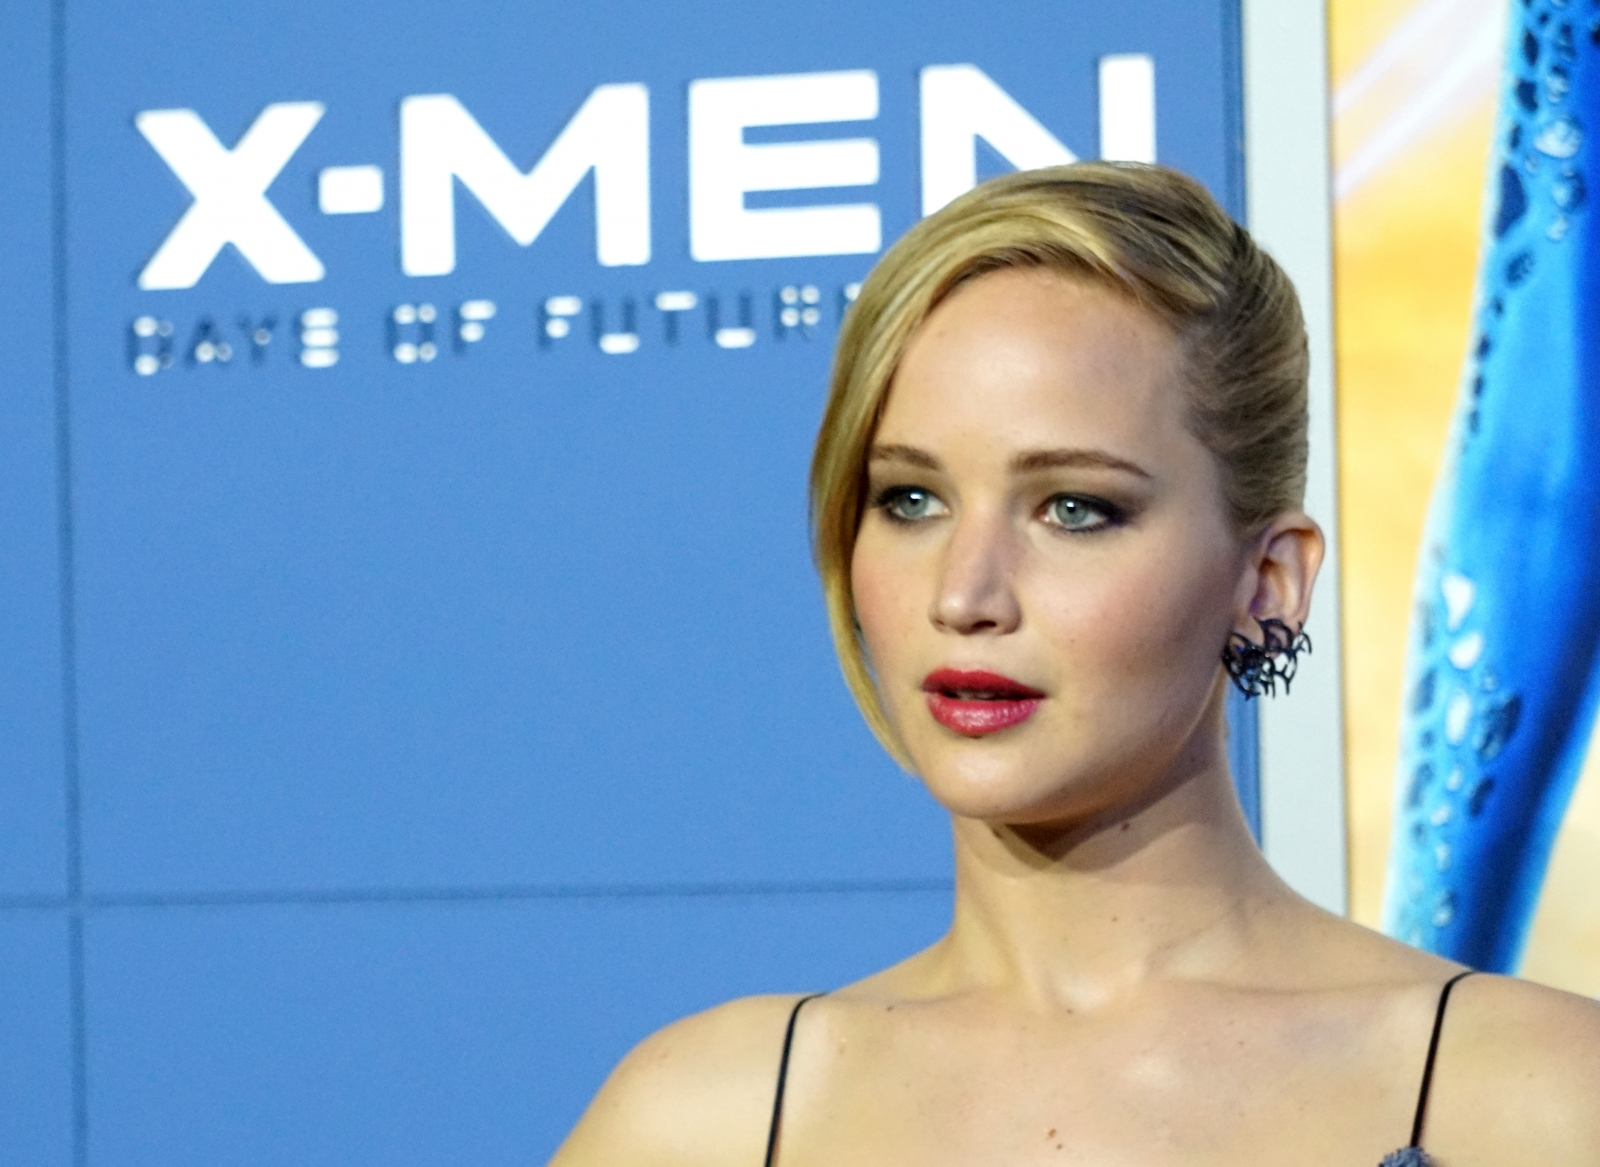 Nude celebrity pictures posted online after alleged iCloud ...